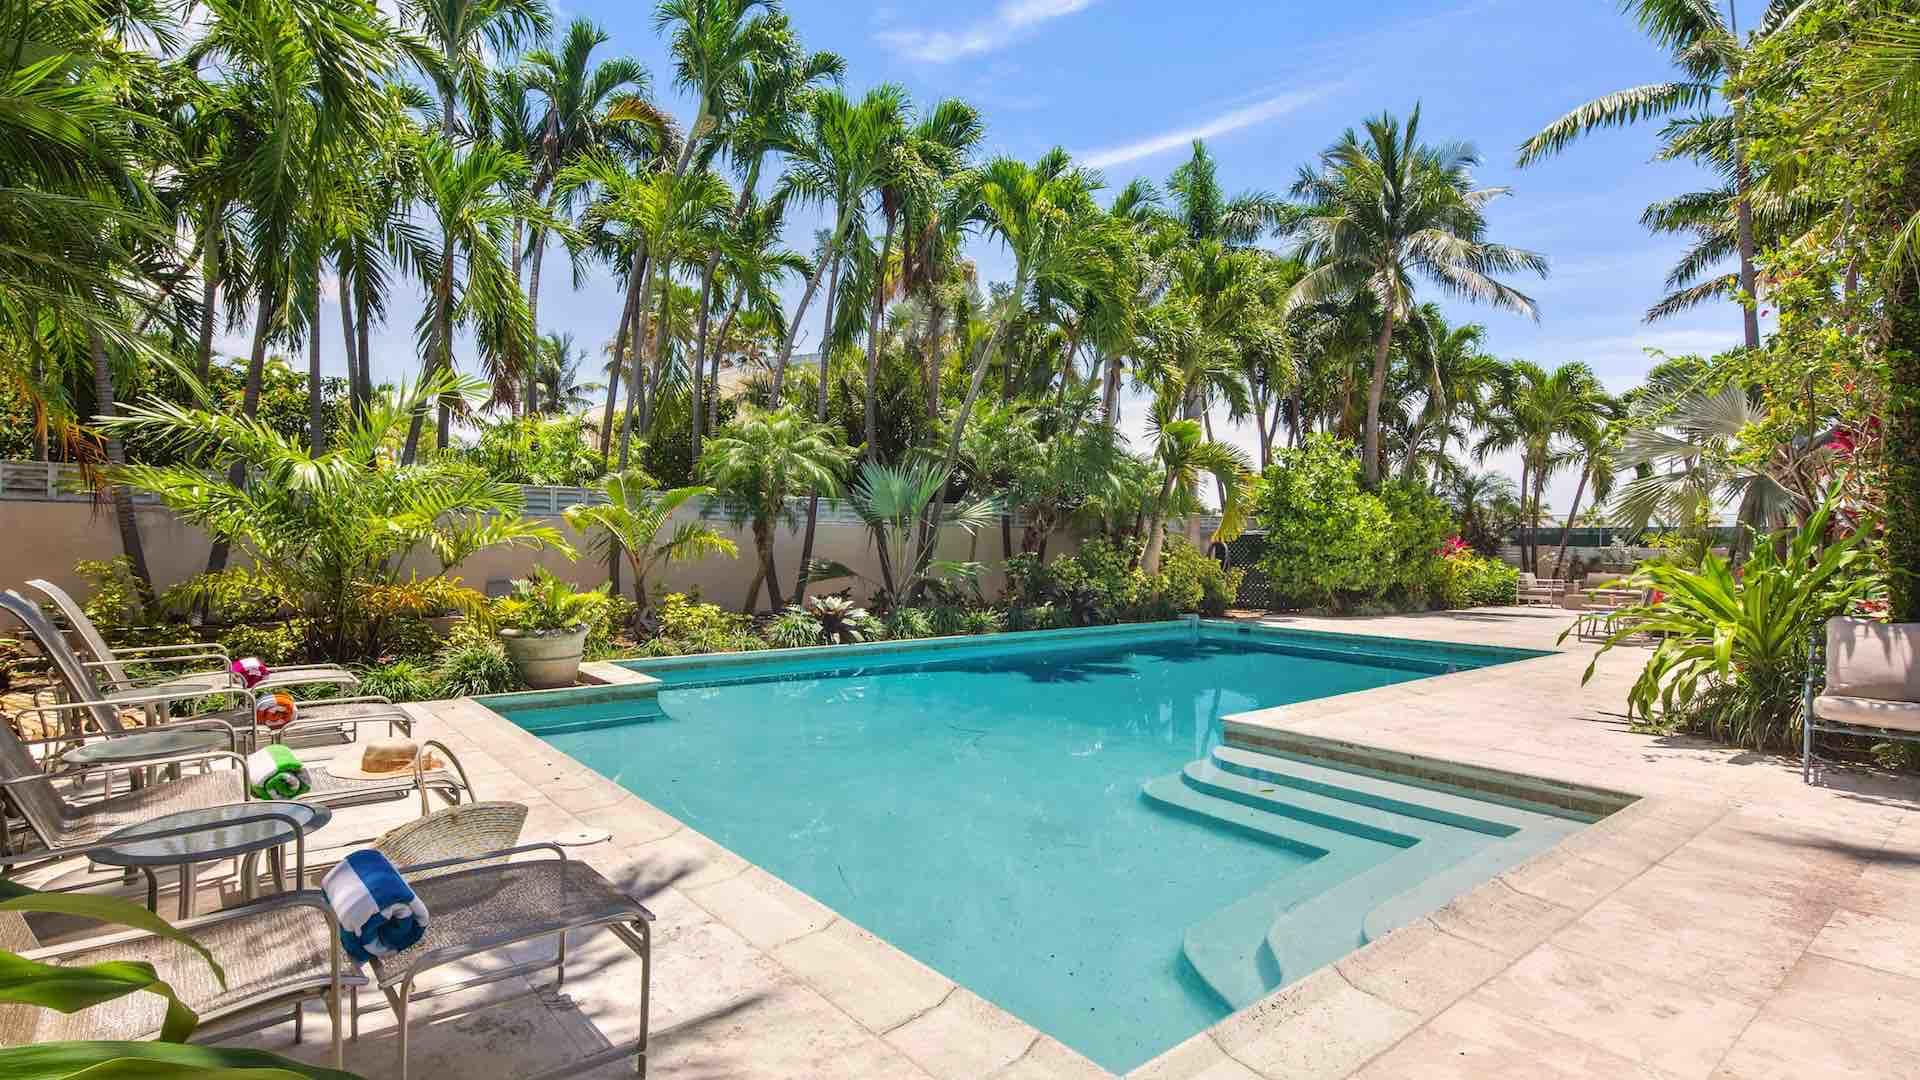 The pool area is fenced for complete privacy...